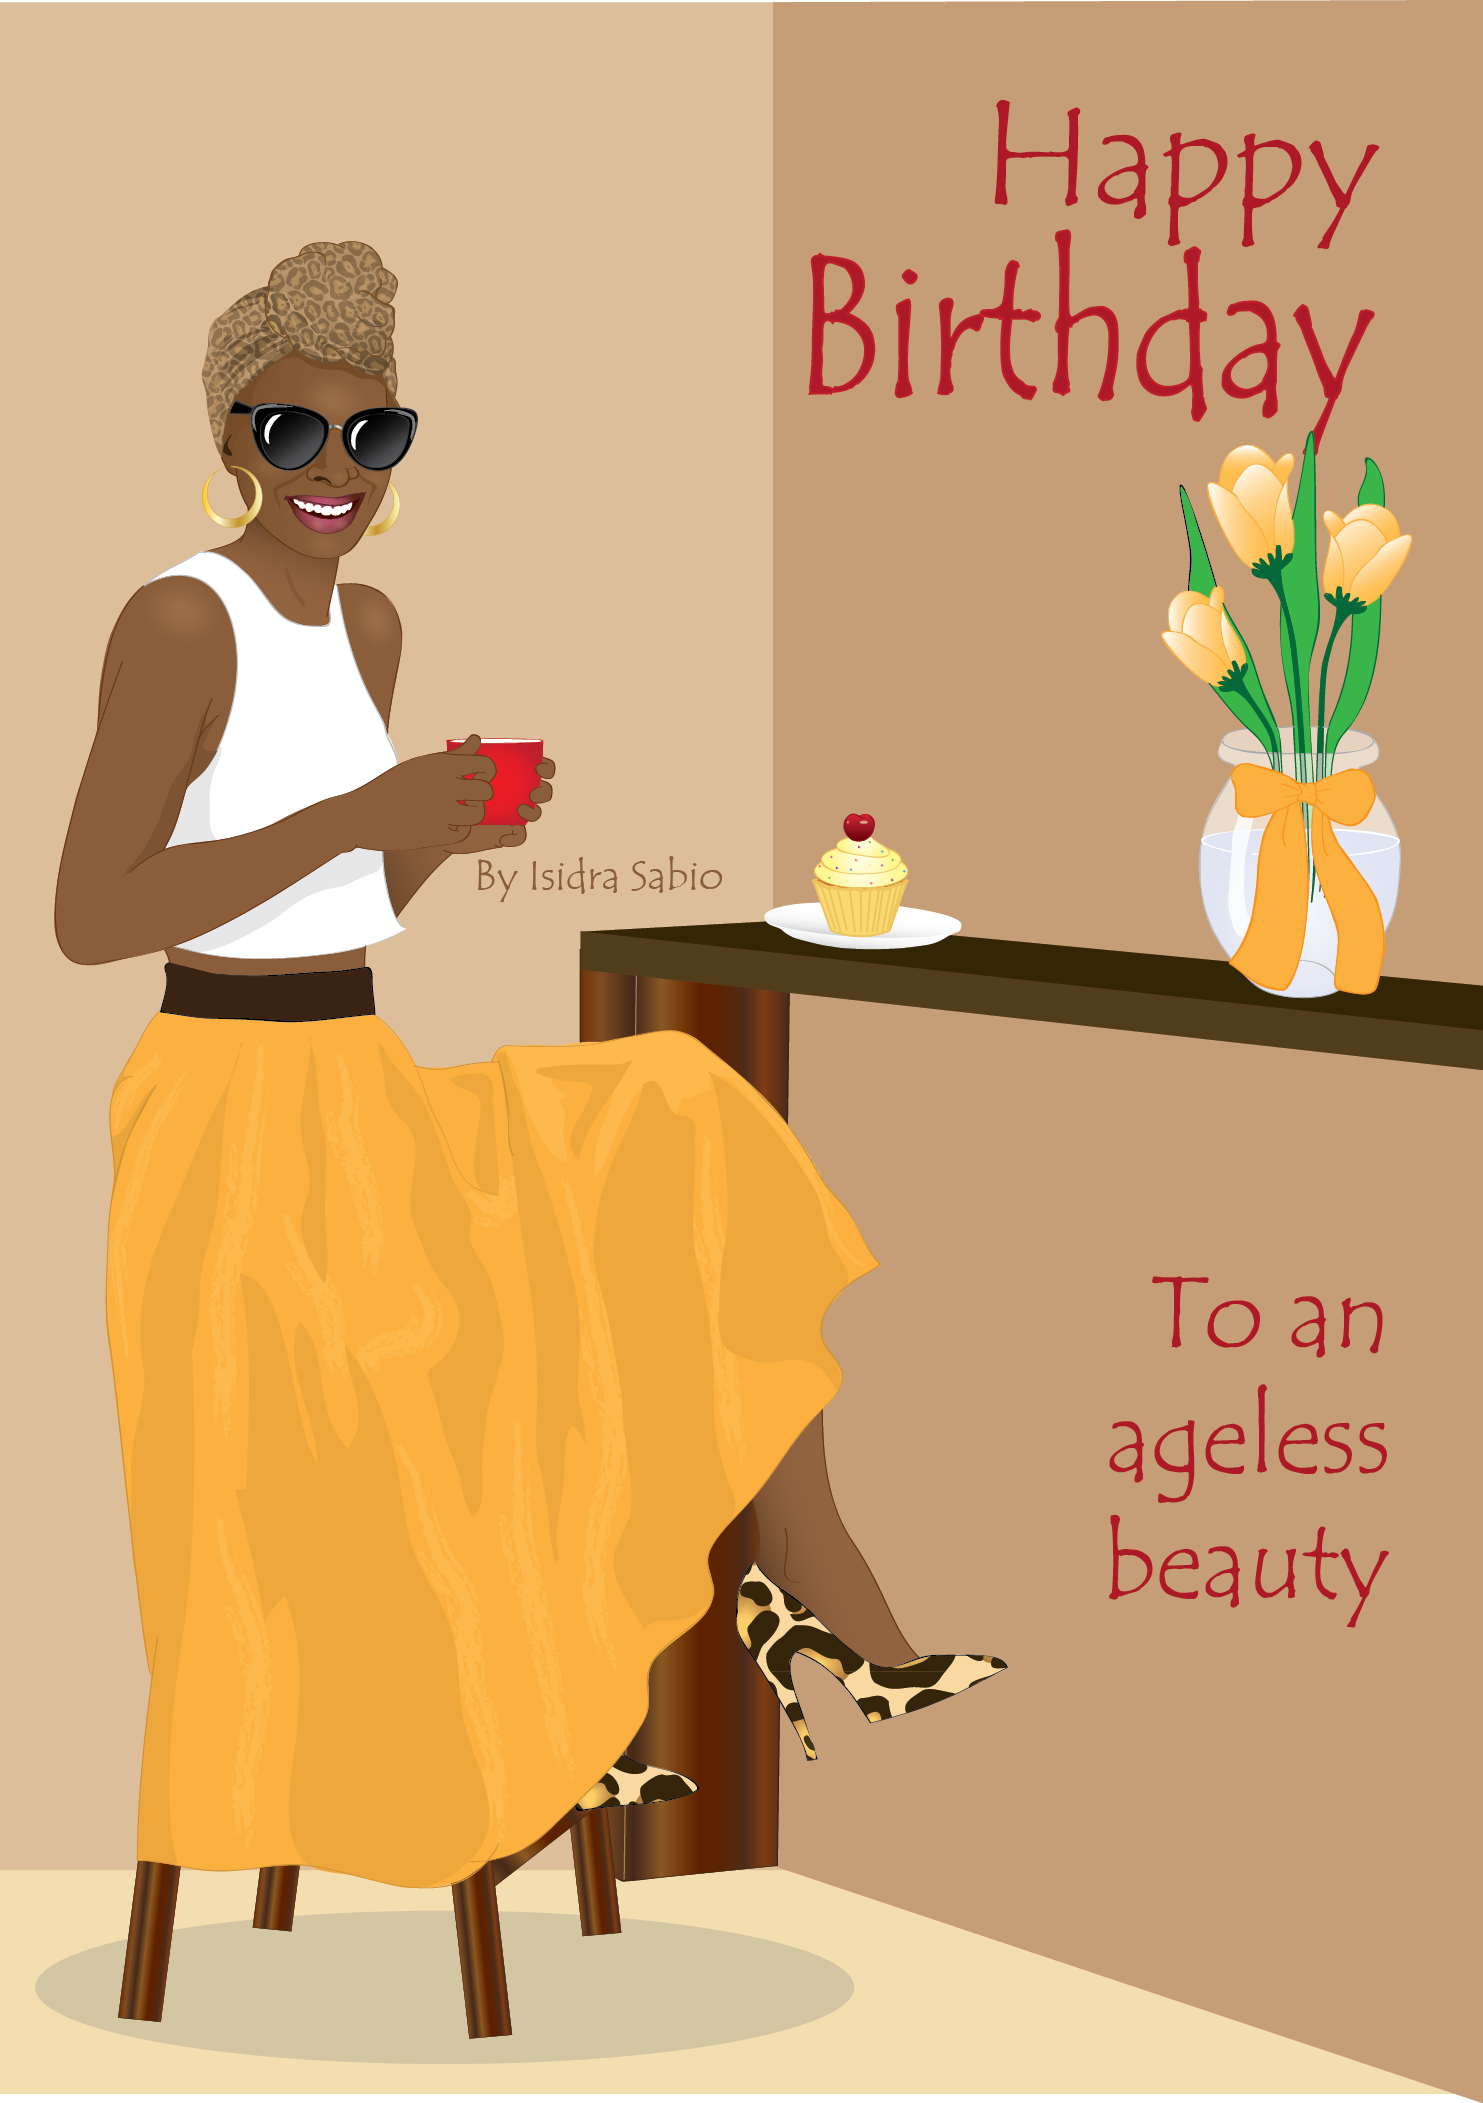 Card available now this afrocentric birthday card women has a birthday women beautiful black woman with a head scarf card personalize any greeting card for no additional cost product id 1463574 kristyandbryce Image collections